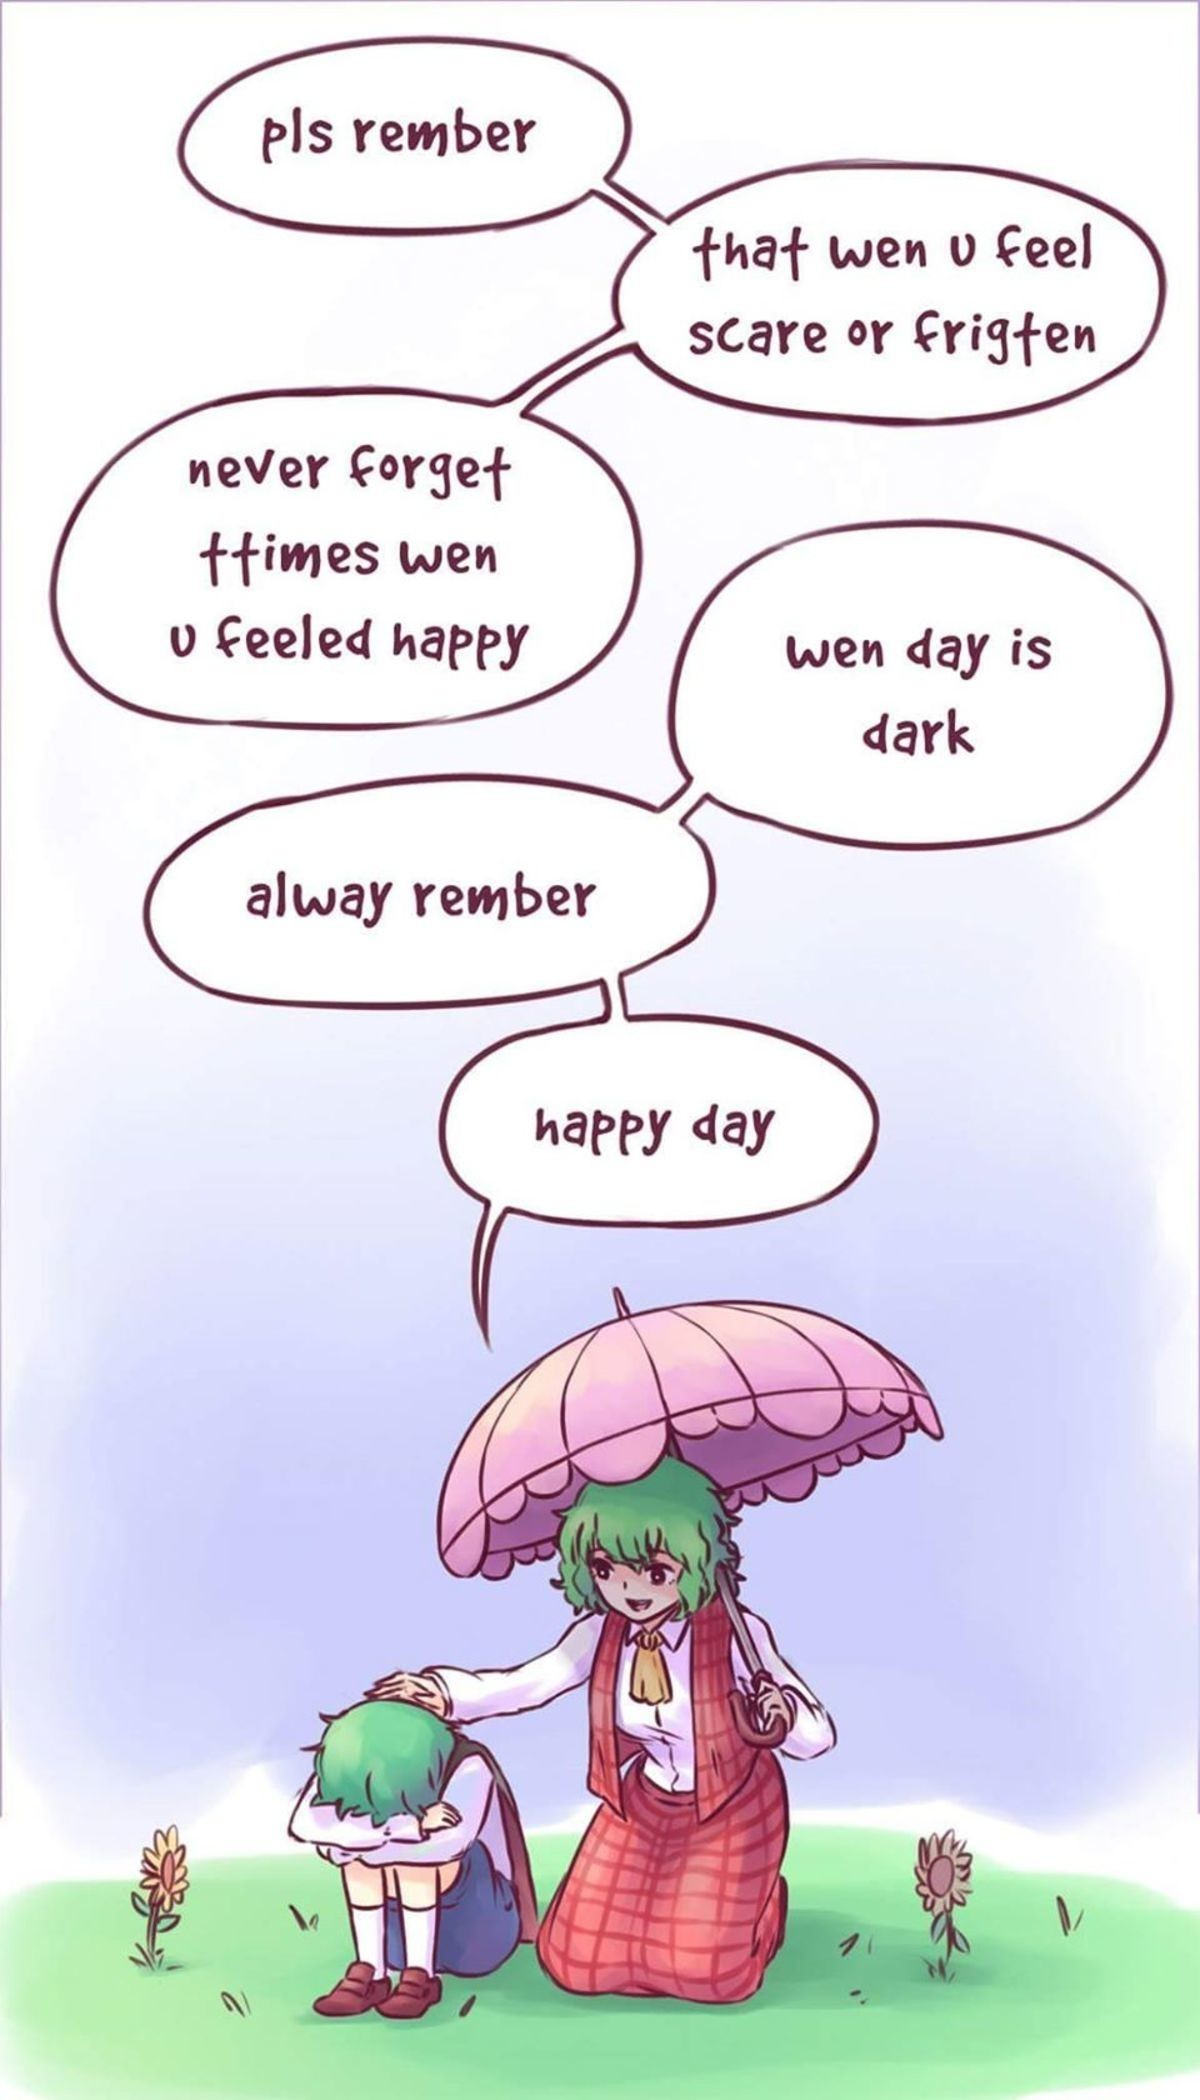 alway rember. .. >>#2